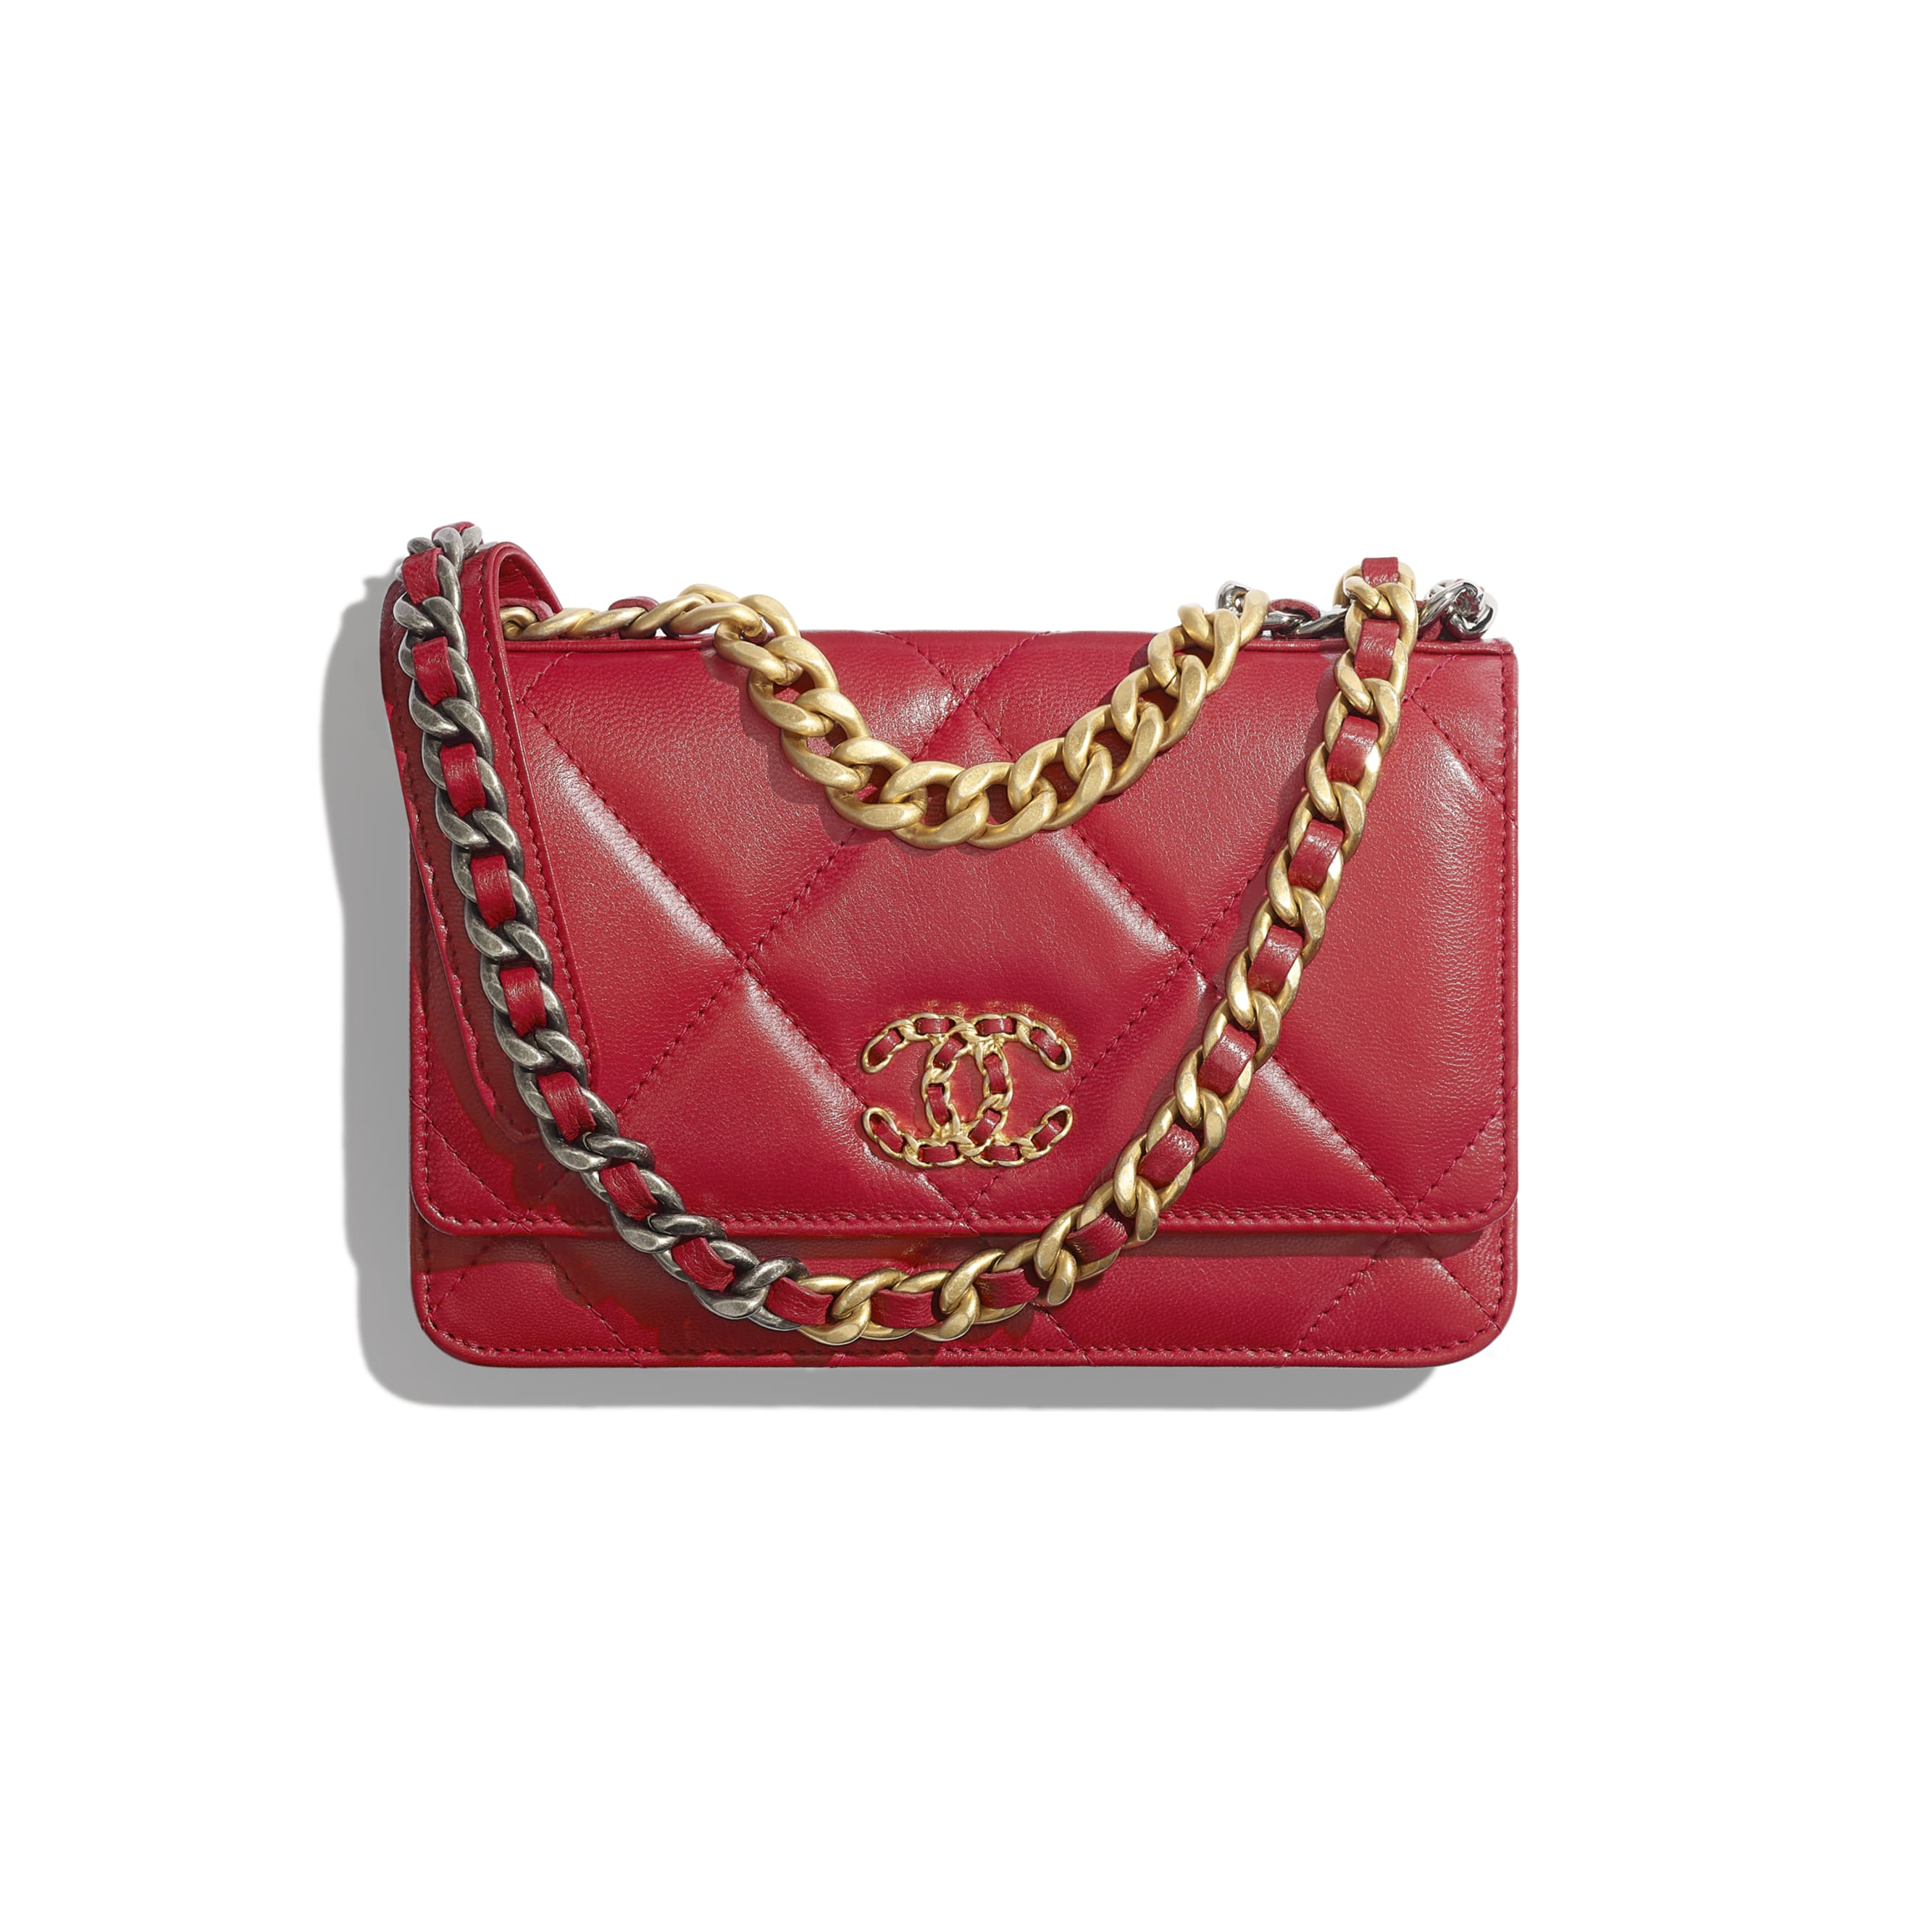 CHANEL 19 Wallet on Chain - Red - Shiny Goatskin, Gold-Tone, Silver-Tone & Ruthenium-Finish Metal - Default view - see standard sized version